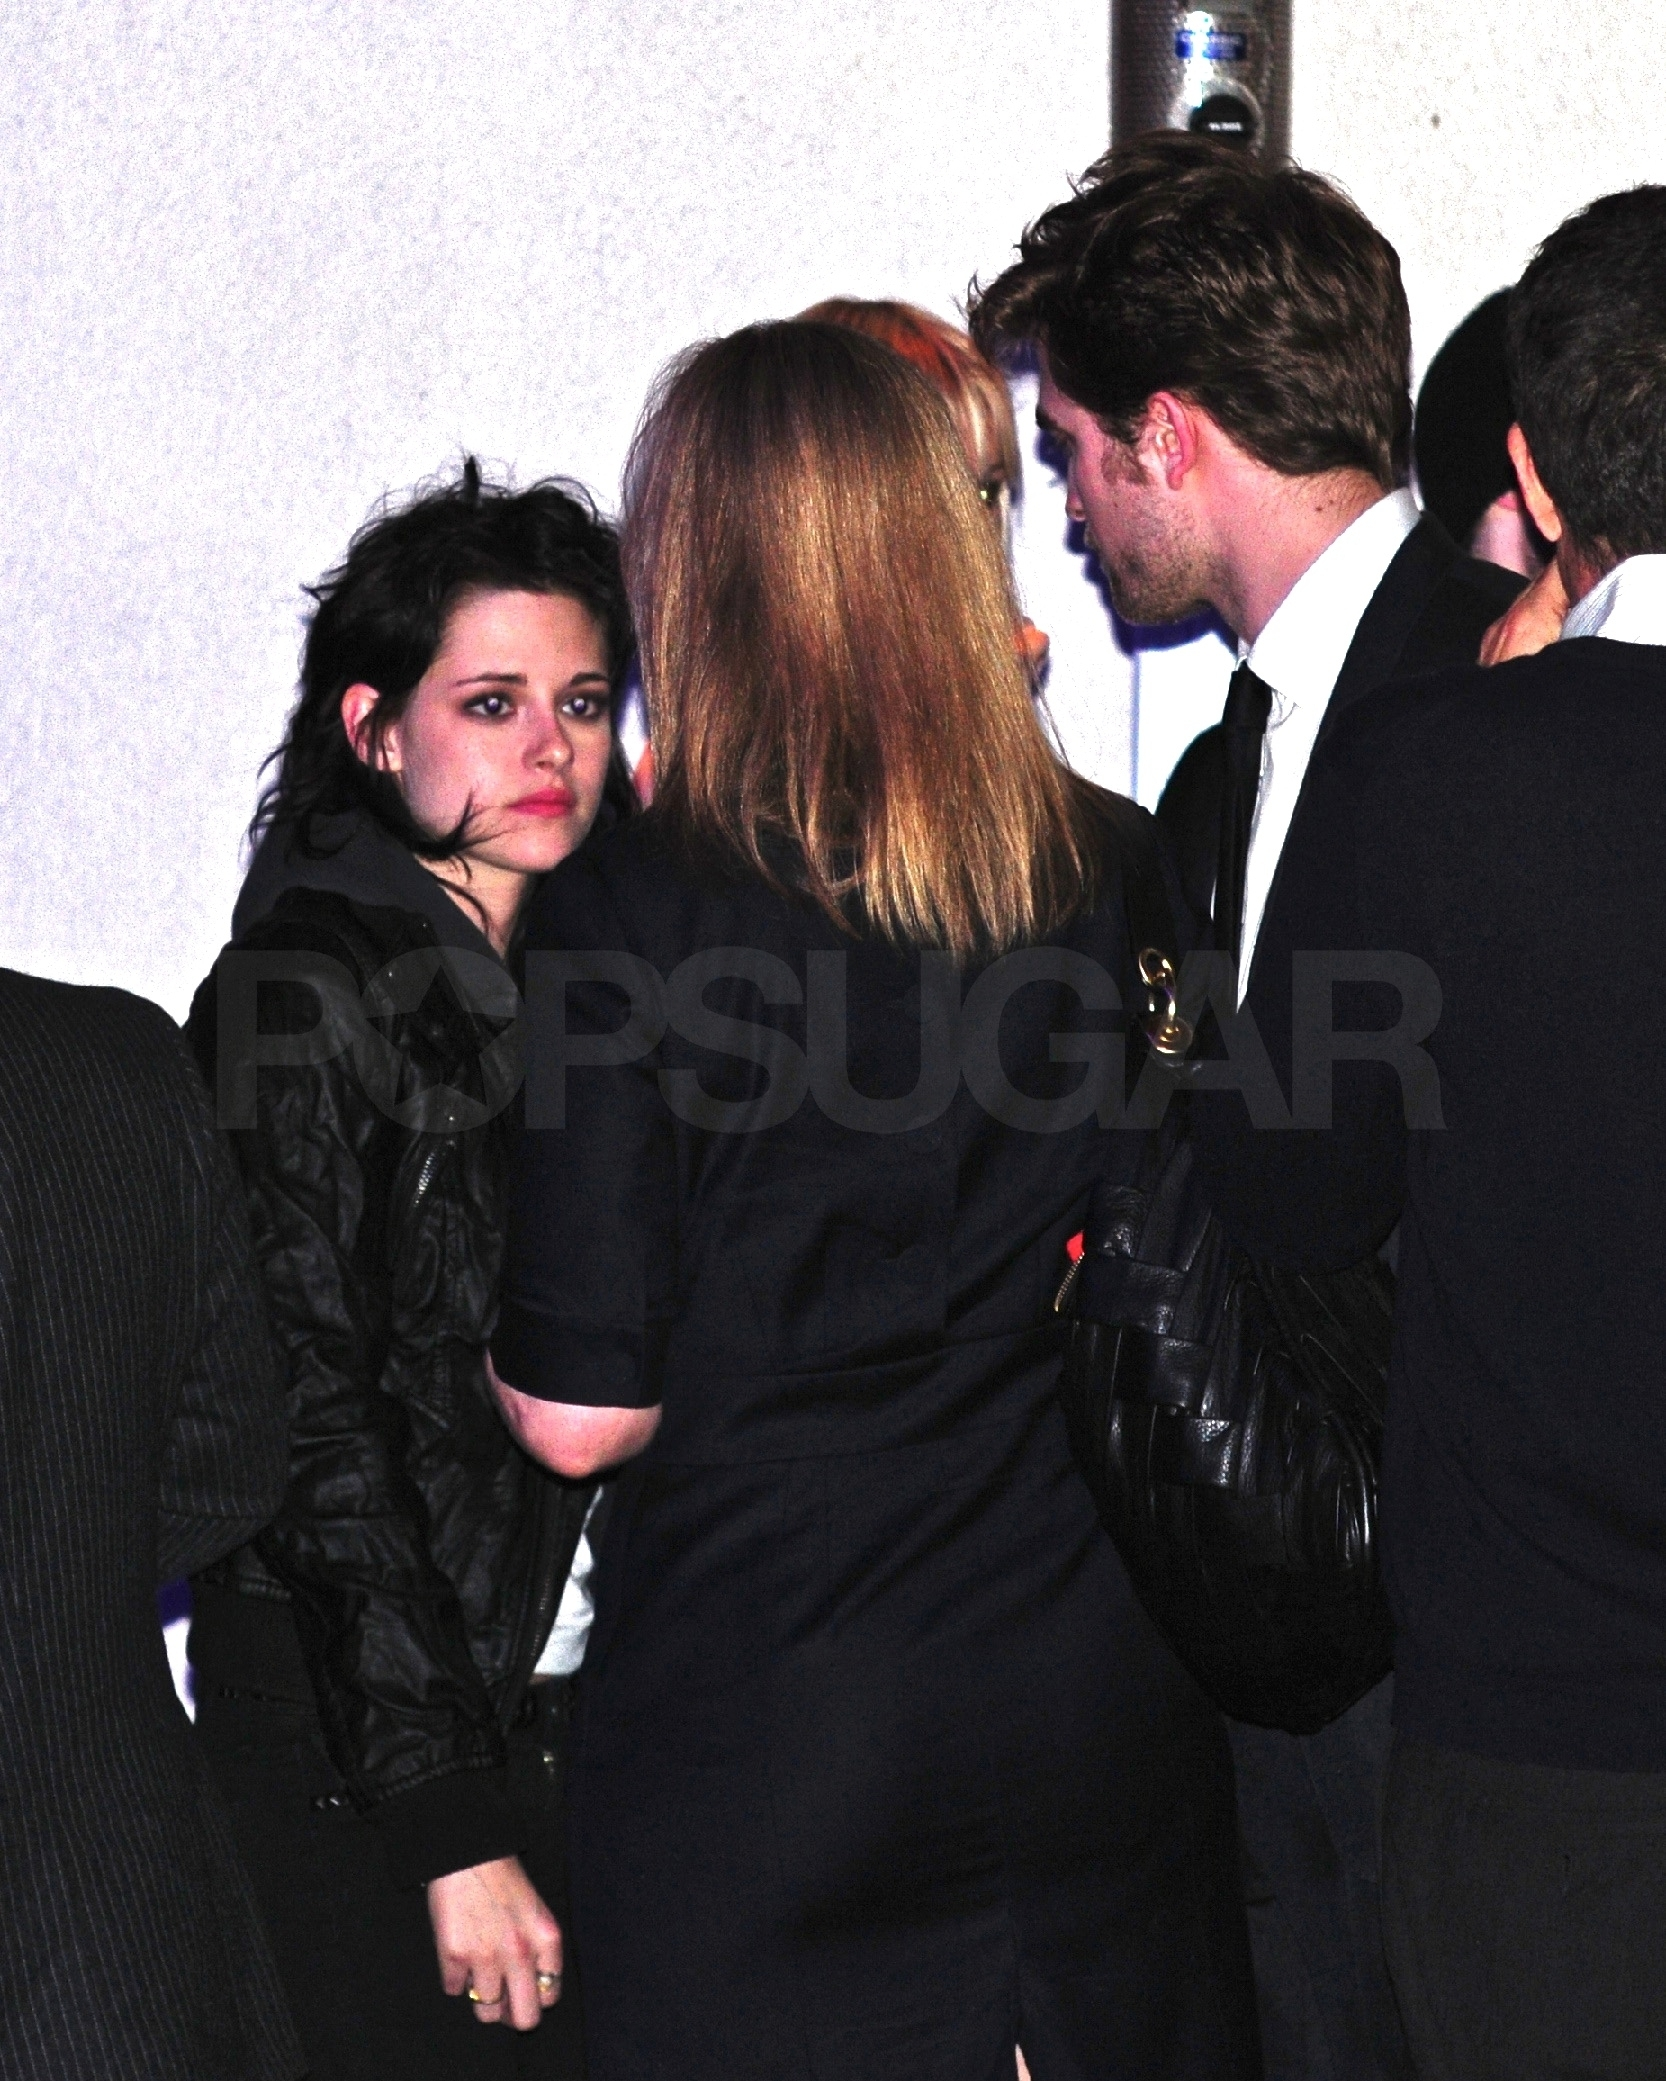 http://images2.fanpop.com/image/photos/9000000/New-pictures-from-the-After-Party-twilight-series-9092283-1666-2081.jpg